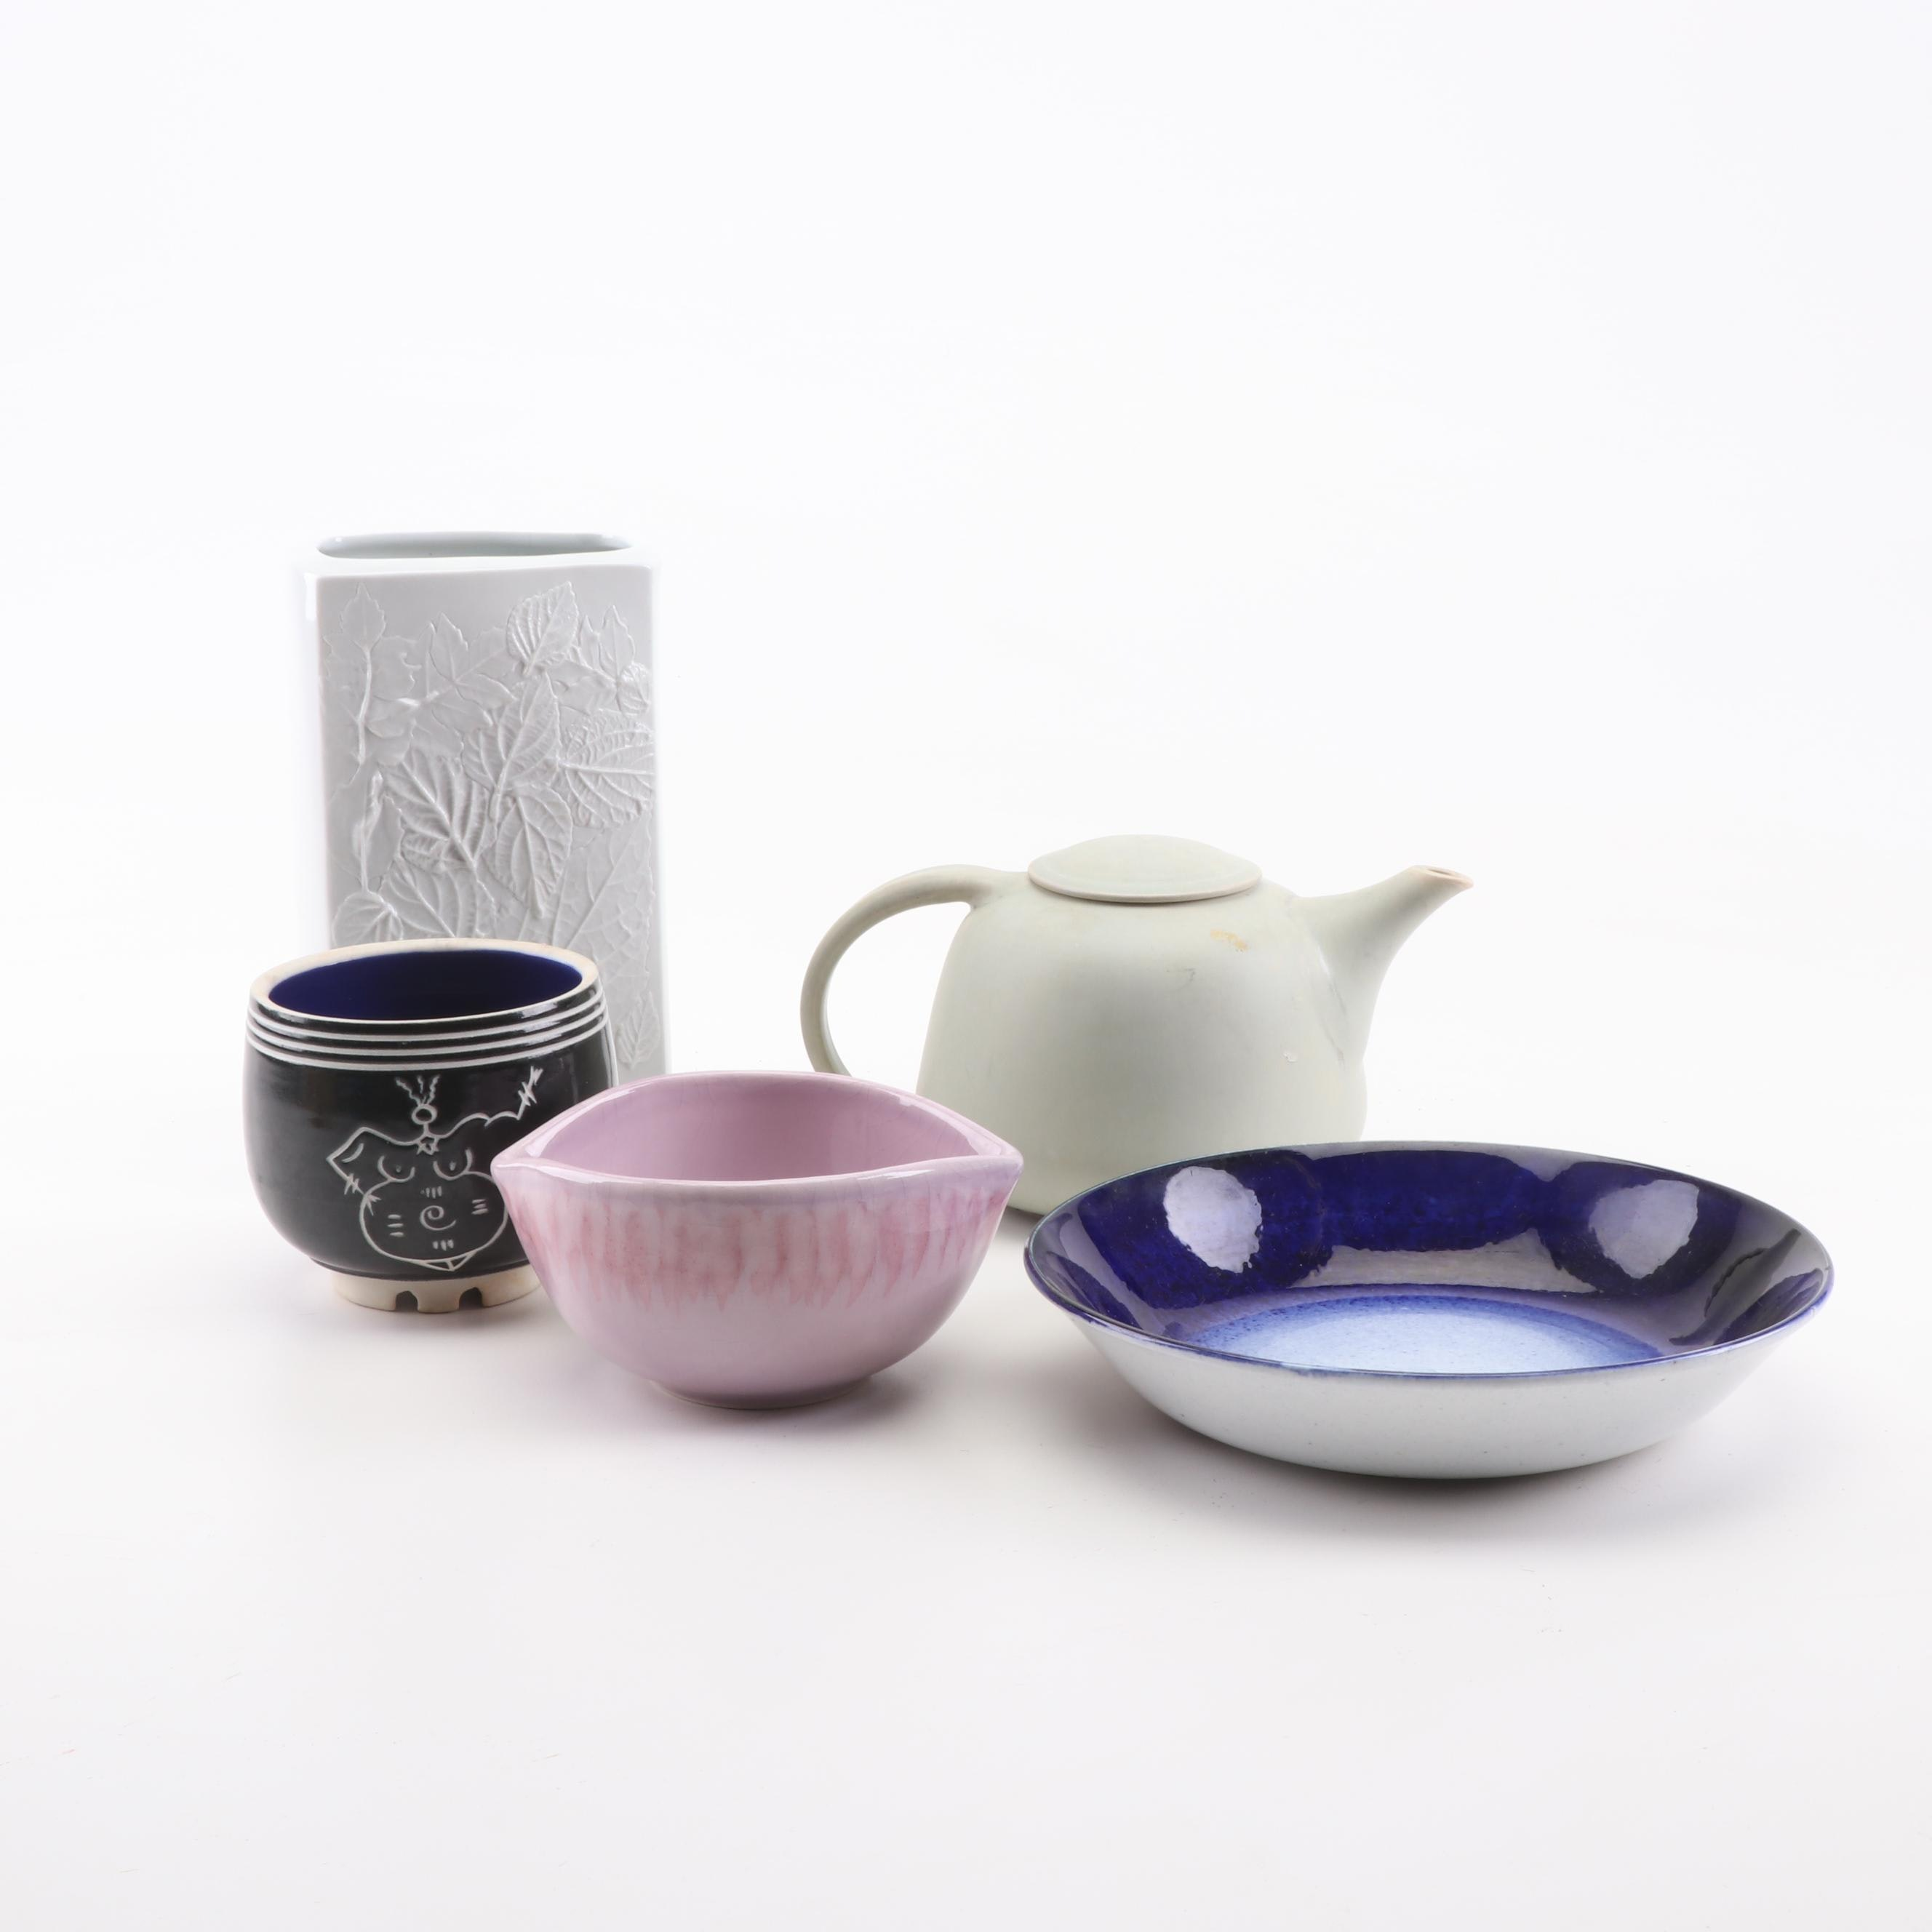 Eileen Goldenberg, Naaman, and Other Modern Style Tableware and Decor